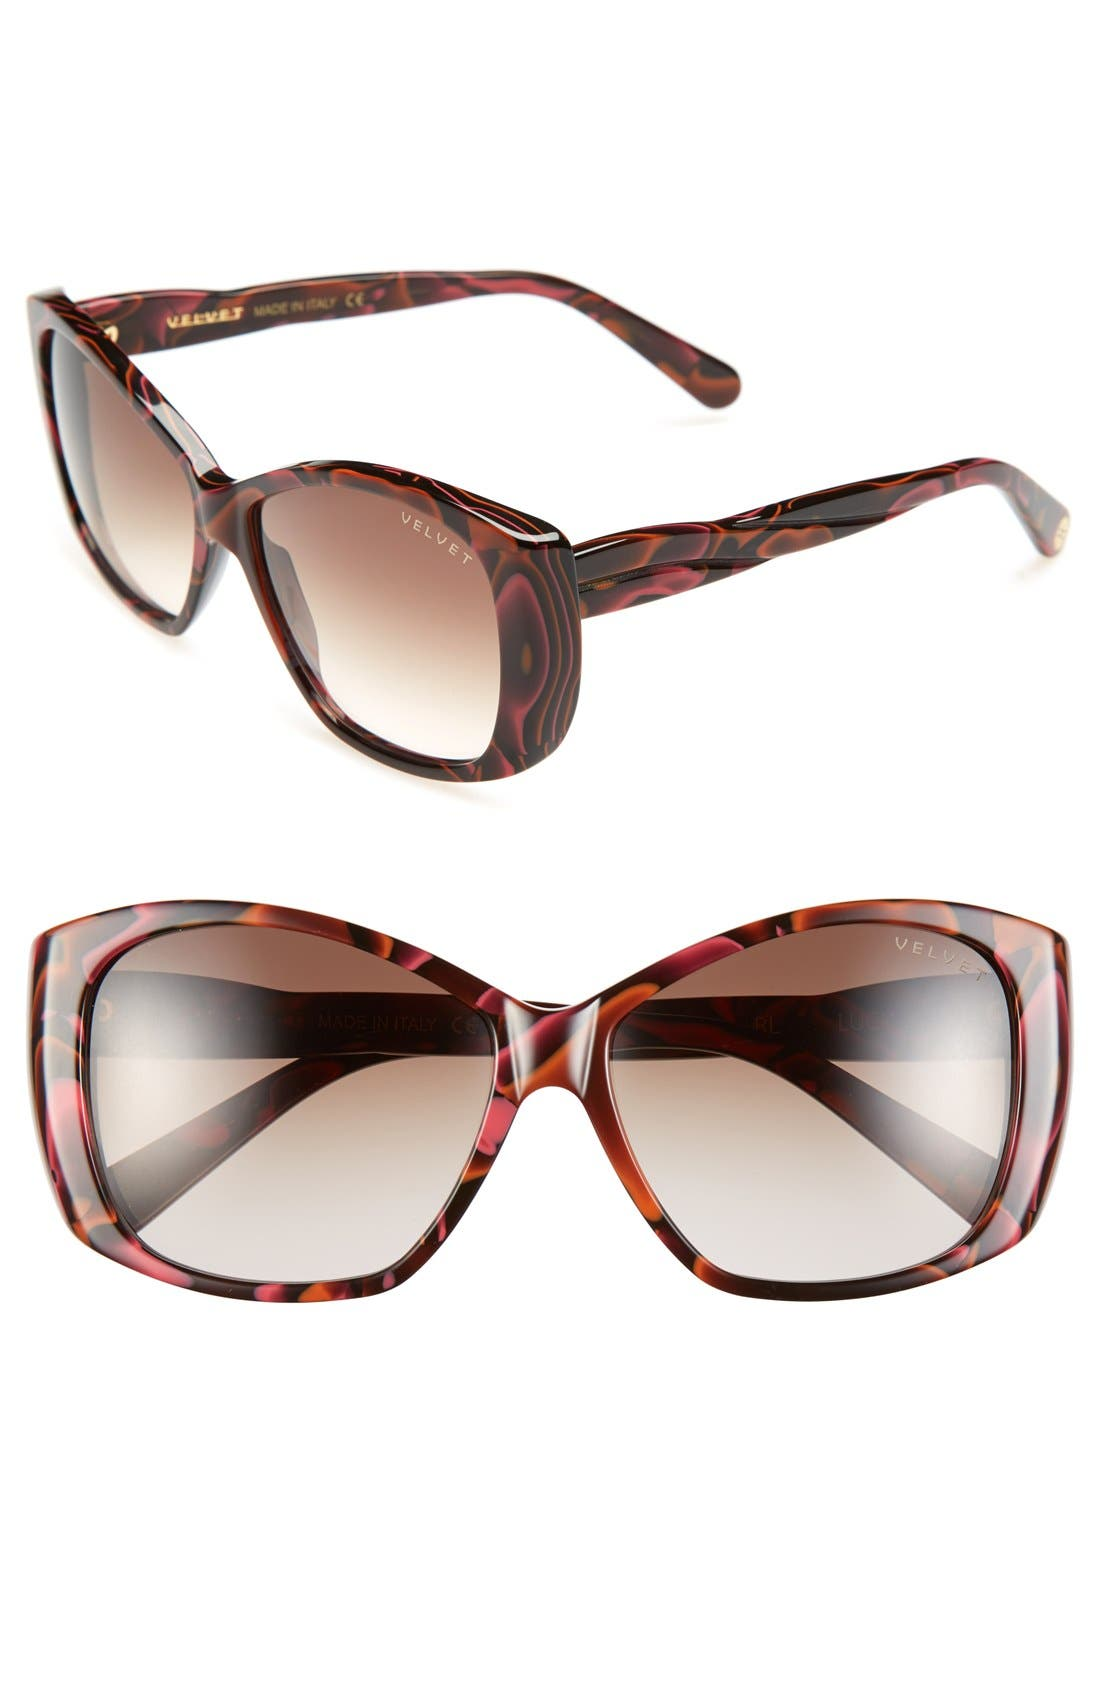 Alternate Image 1 Selected - Velvet Eyewear 'Lucy' 56mm Butterfly Sunglasses